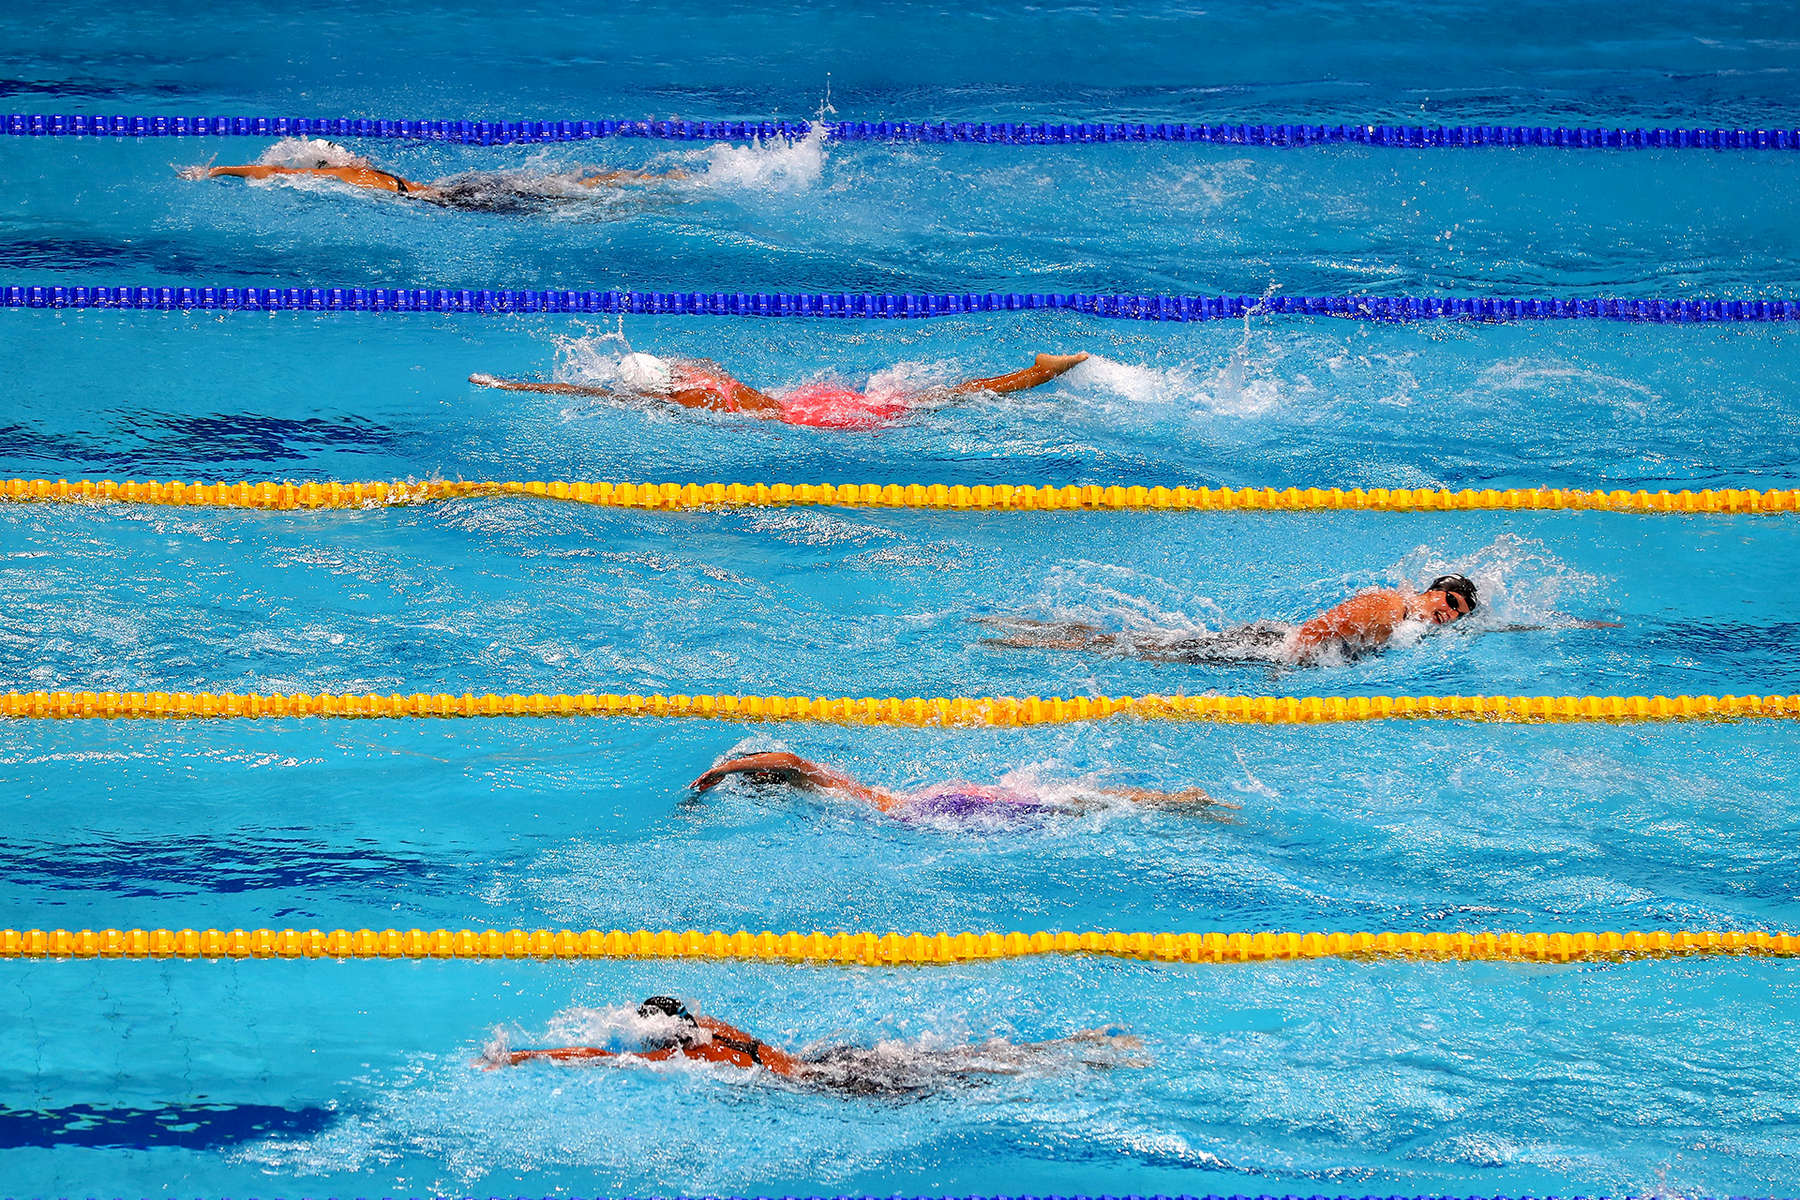 Katie Ledecky (C) of the United States laps her fellow competitors during the Women's 1500m Freestyle final on day twelve of the Budapest 2017 FINA World Championships on July 25, 2017 in Budapest, Hungary.